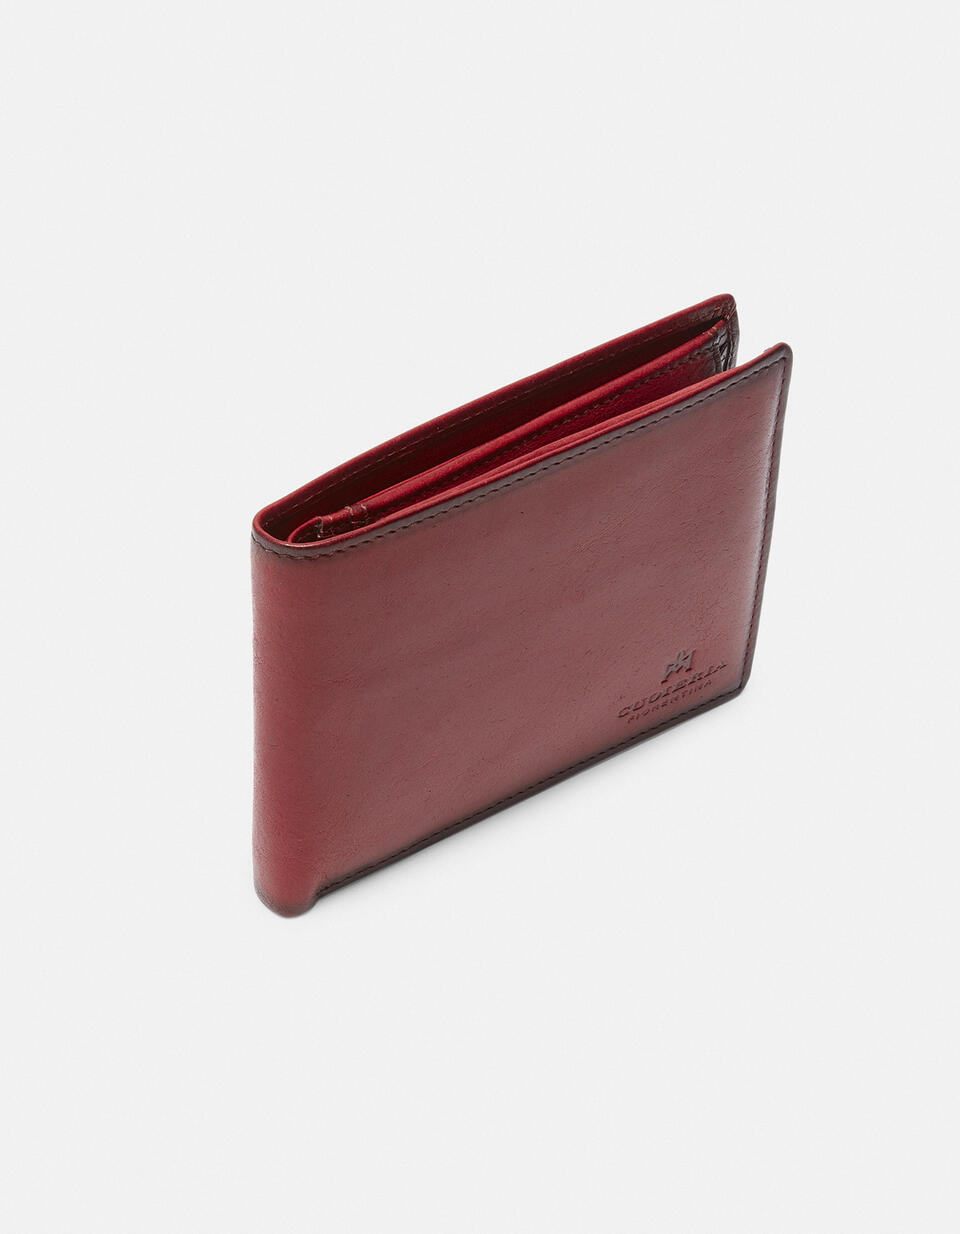 Leather Warm and Color Anti-RFid Wallet ROSSO Cuoieria Fiorentina